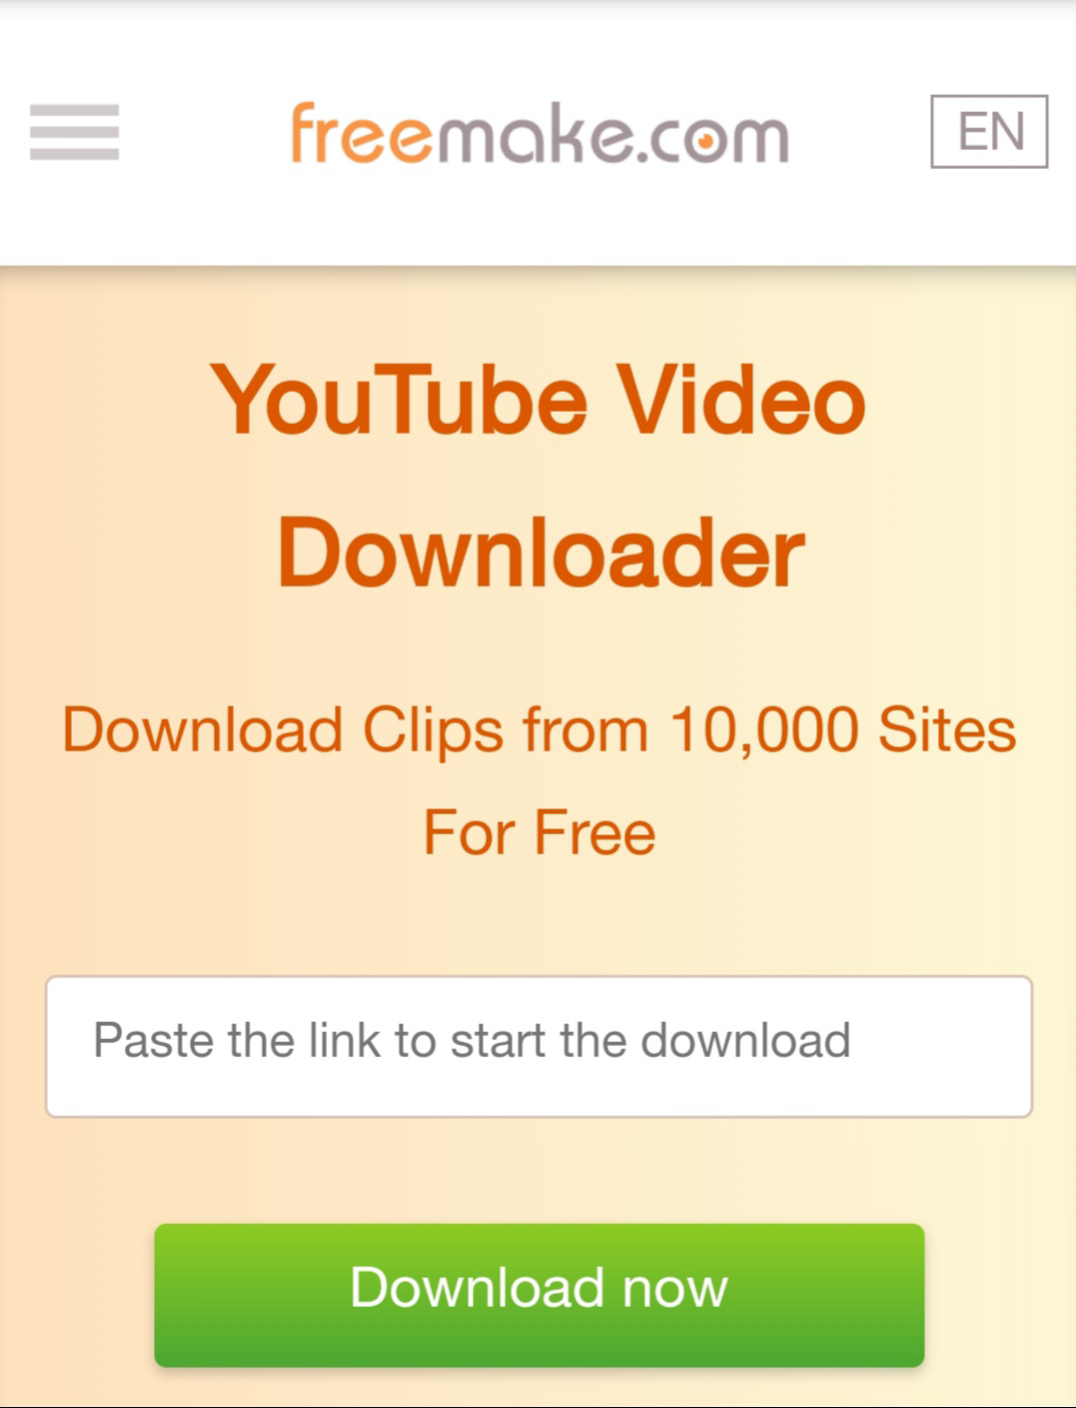 Y2mate Guru Video : y2mate, video, YouTube, Videos, Downloader